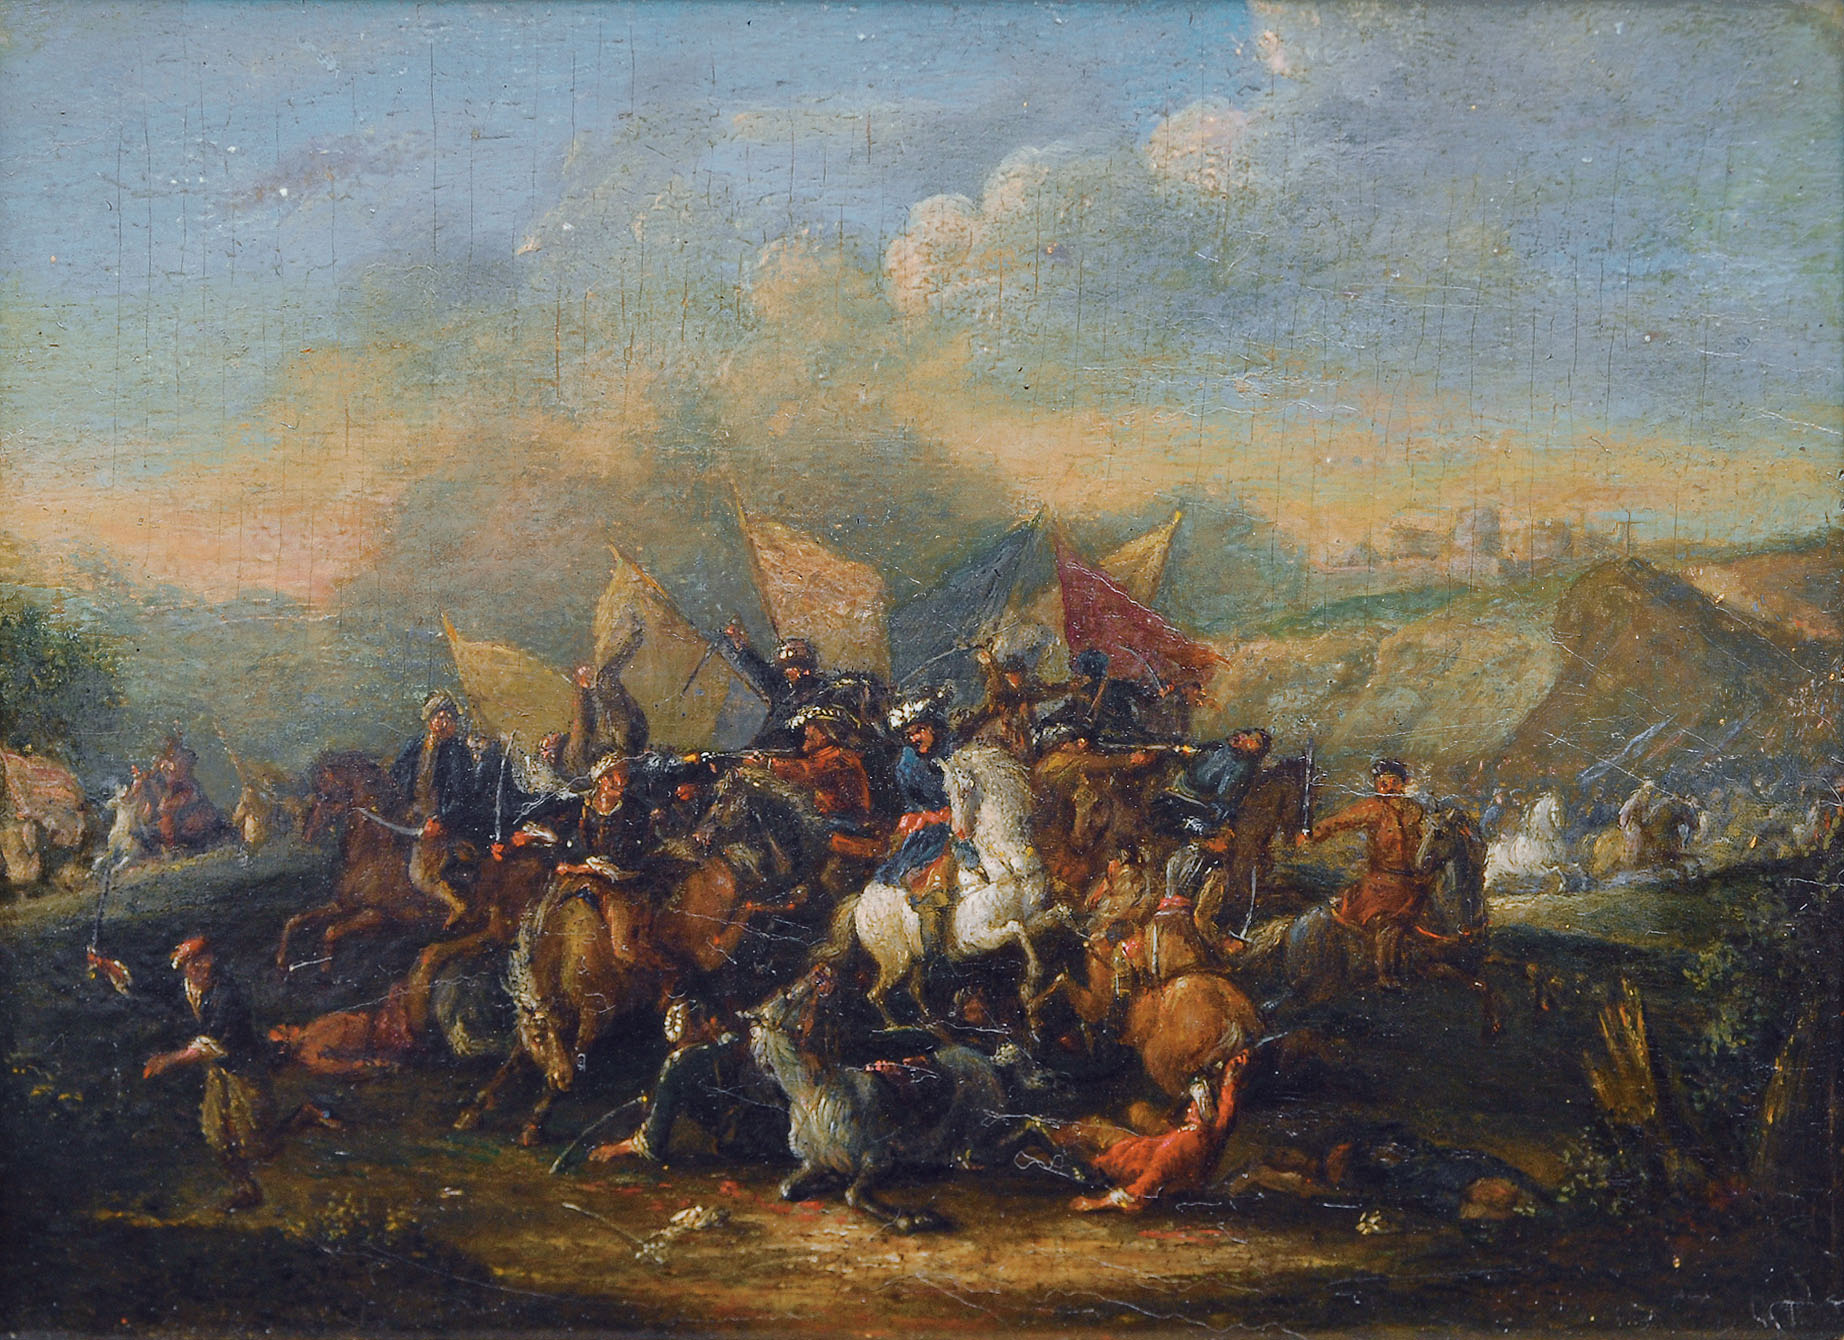 A cavalry combat between Turks and imperial soldiers